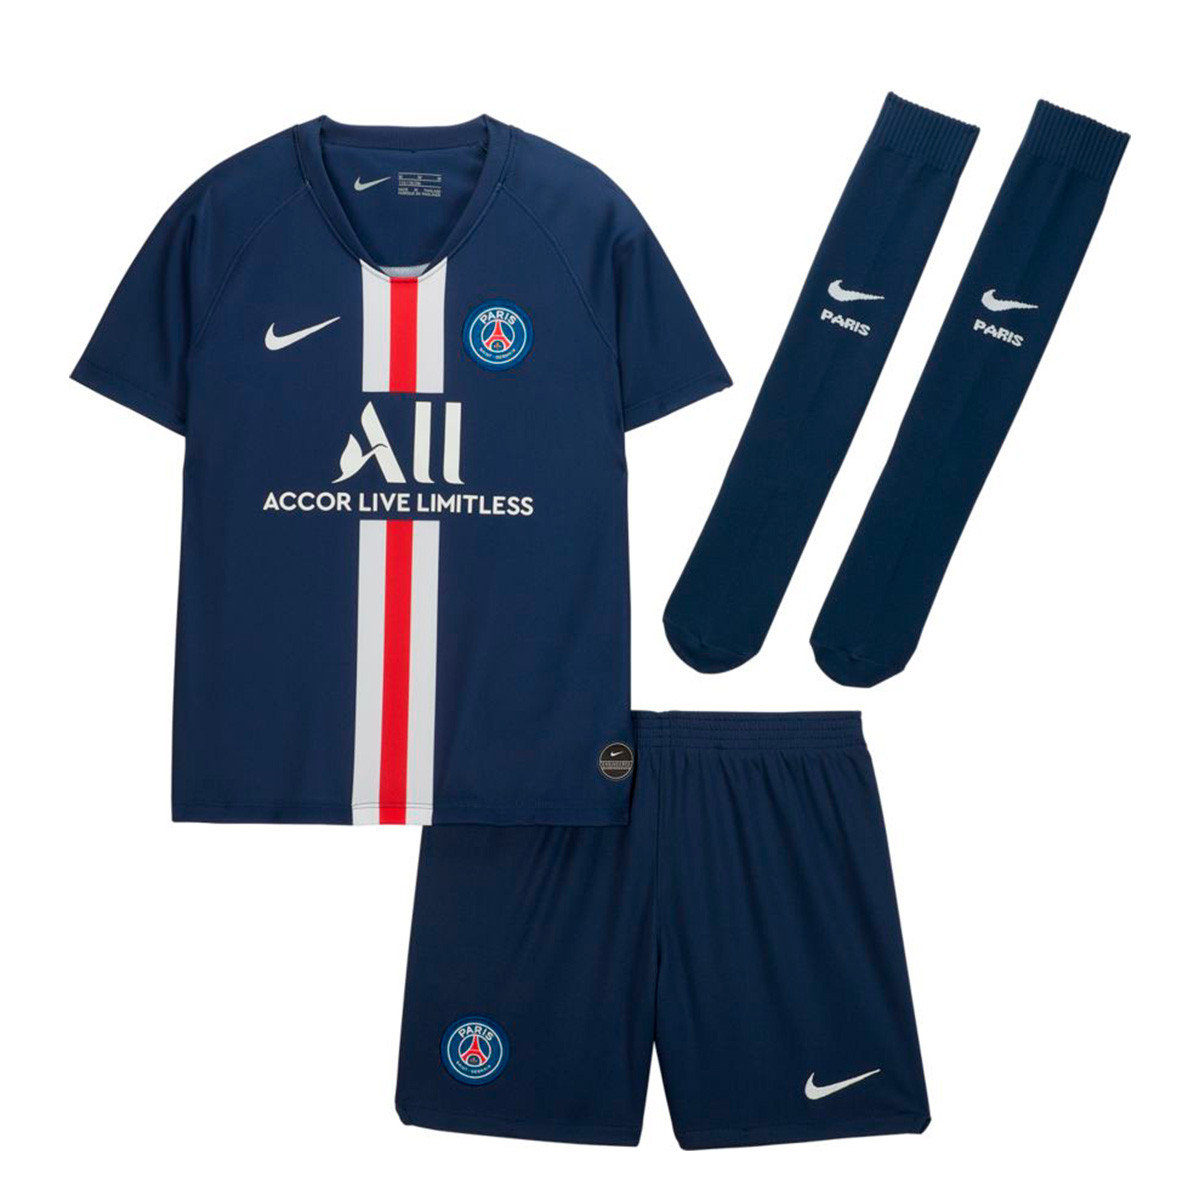 Conjunto Nike Paris Saint Germain Breathe Primera Equipacion 2019 2020 Nino Midnight Navy White Tienda De Futbol Futbol Emotion